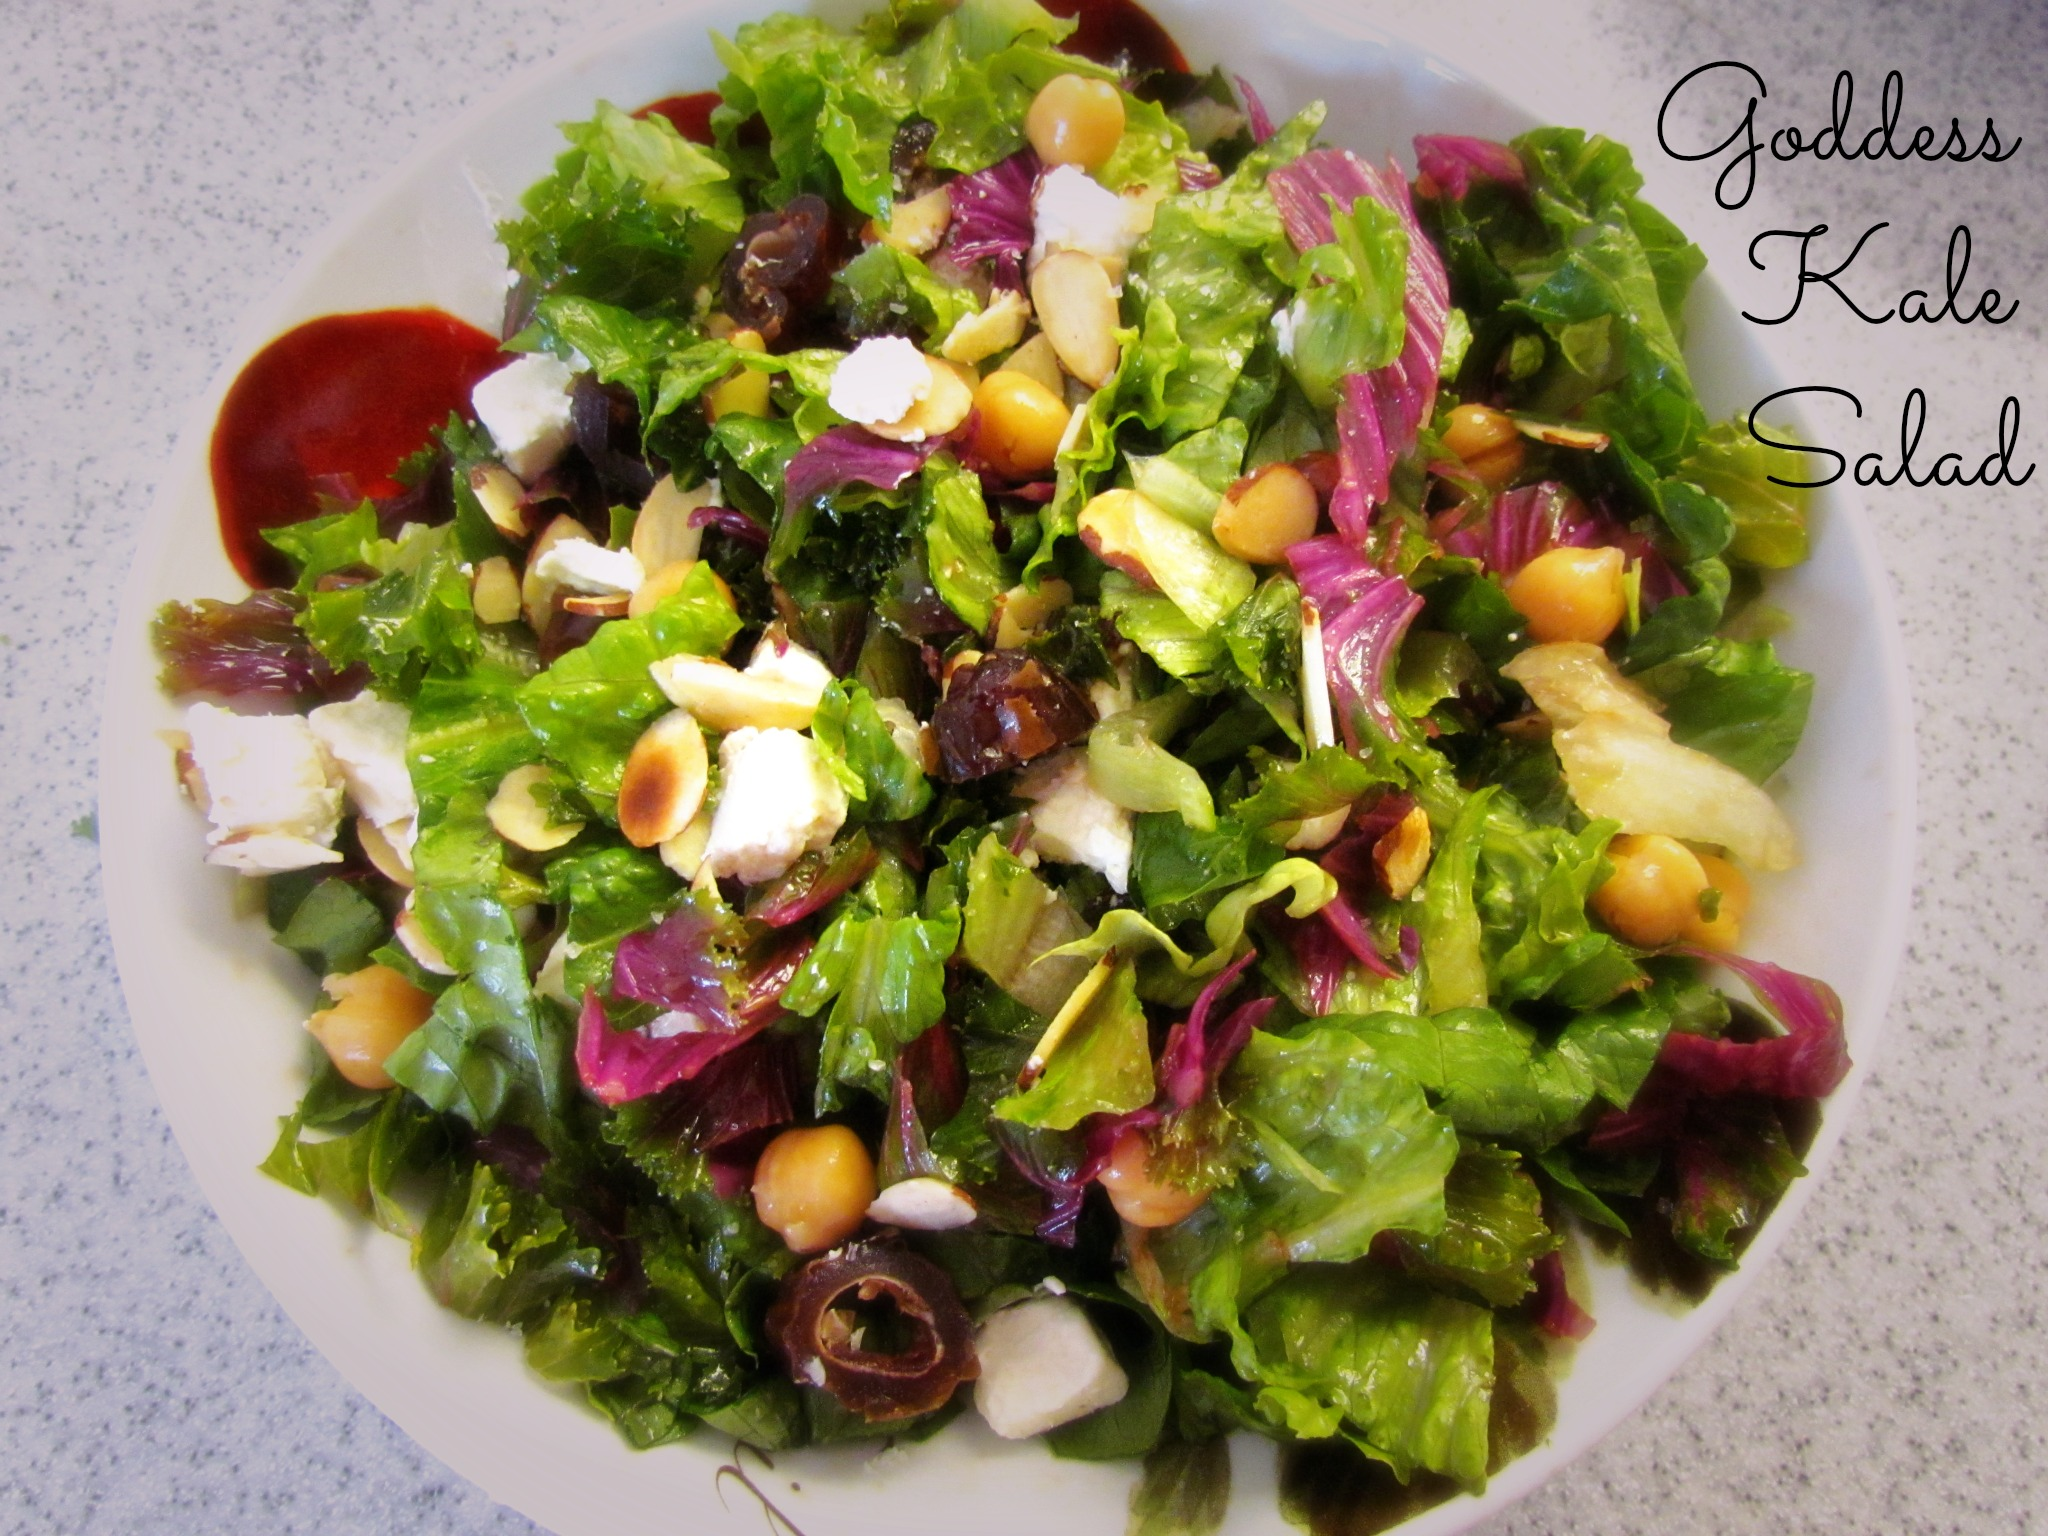 Goddess Kale Salad